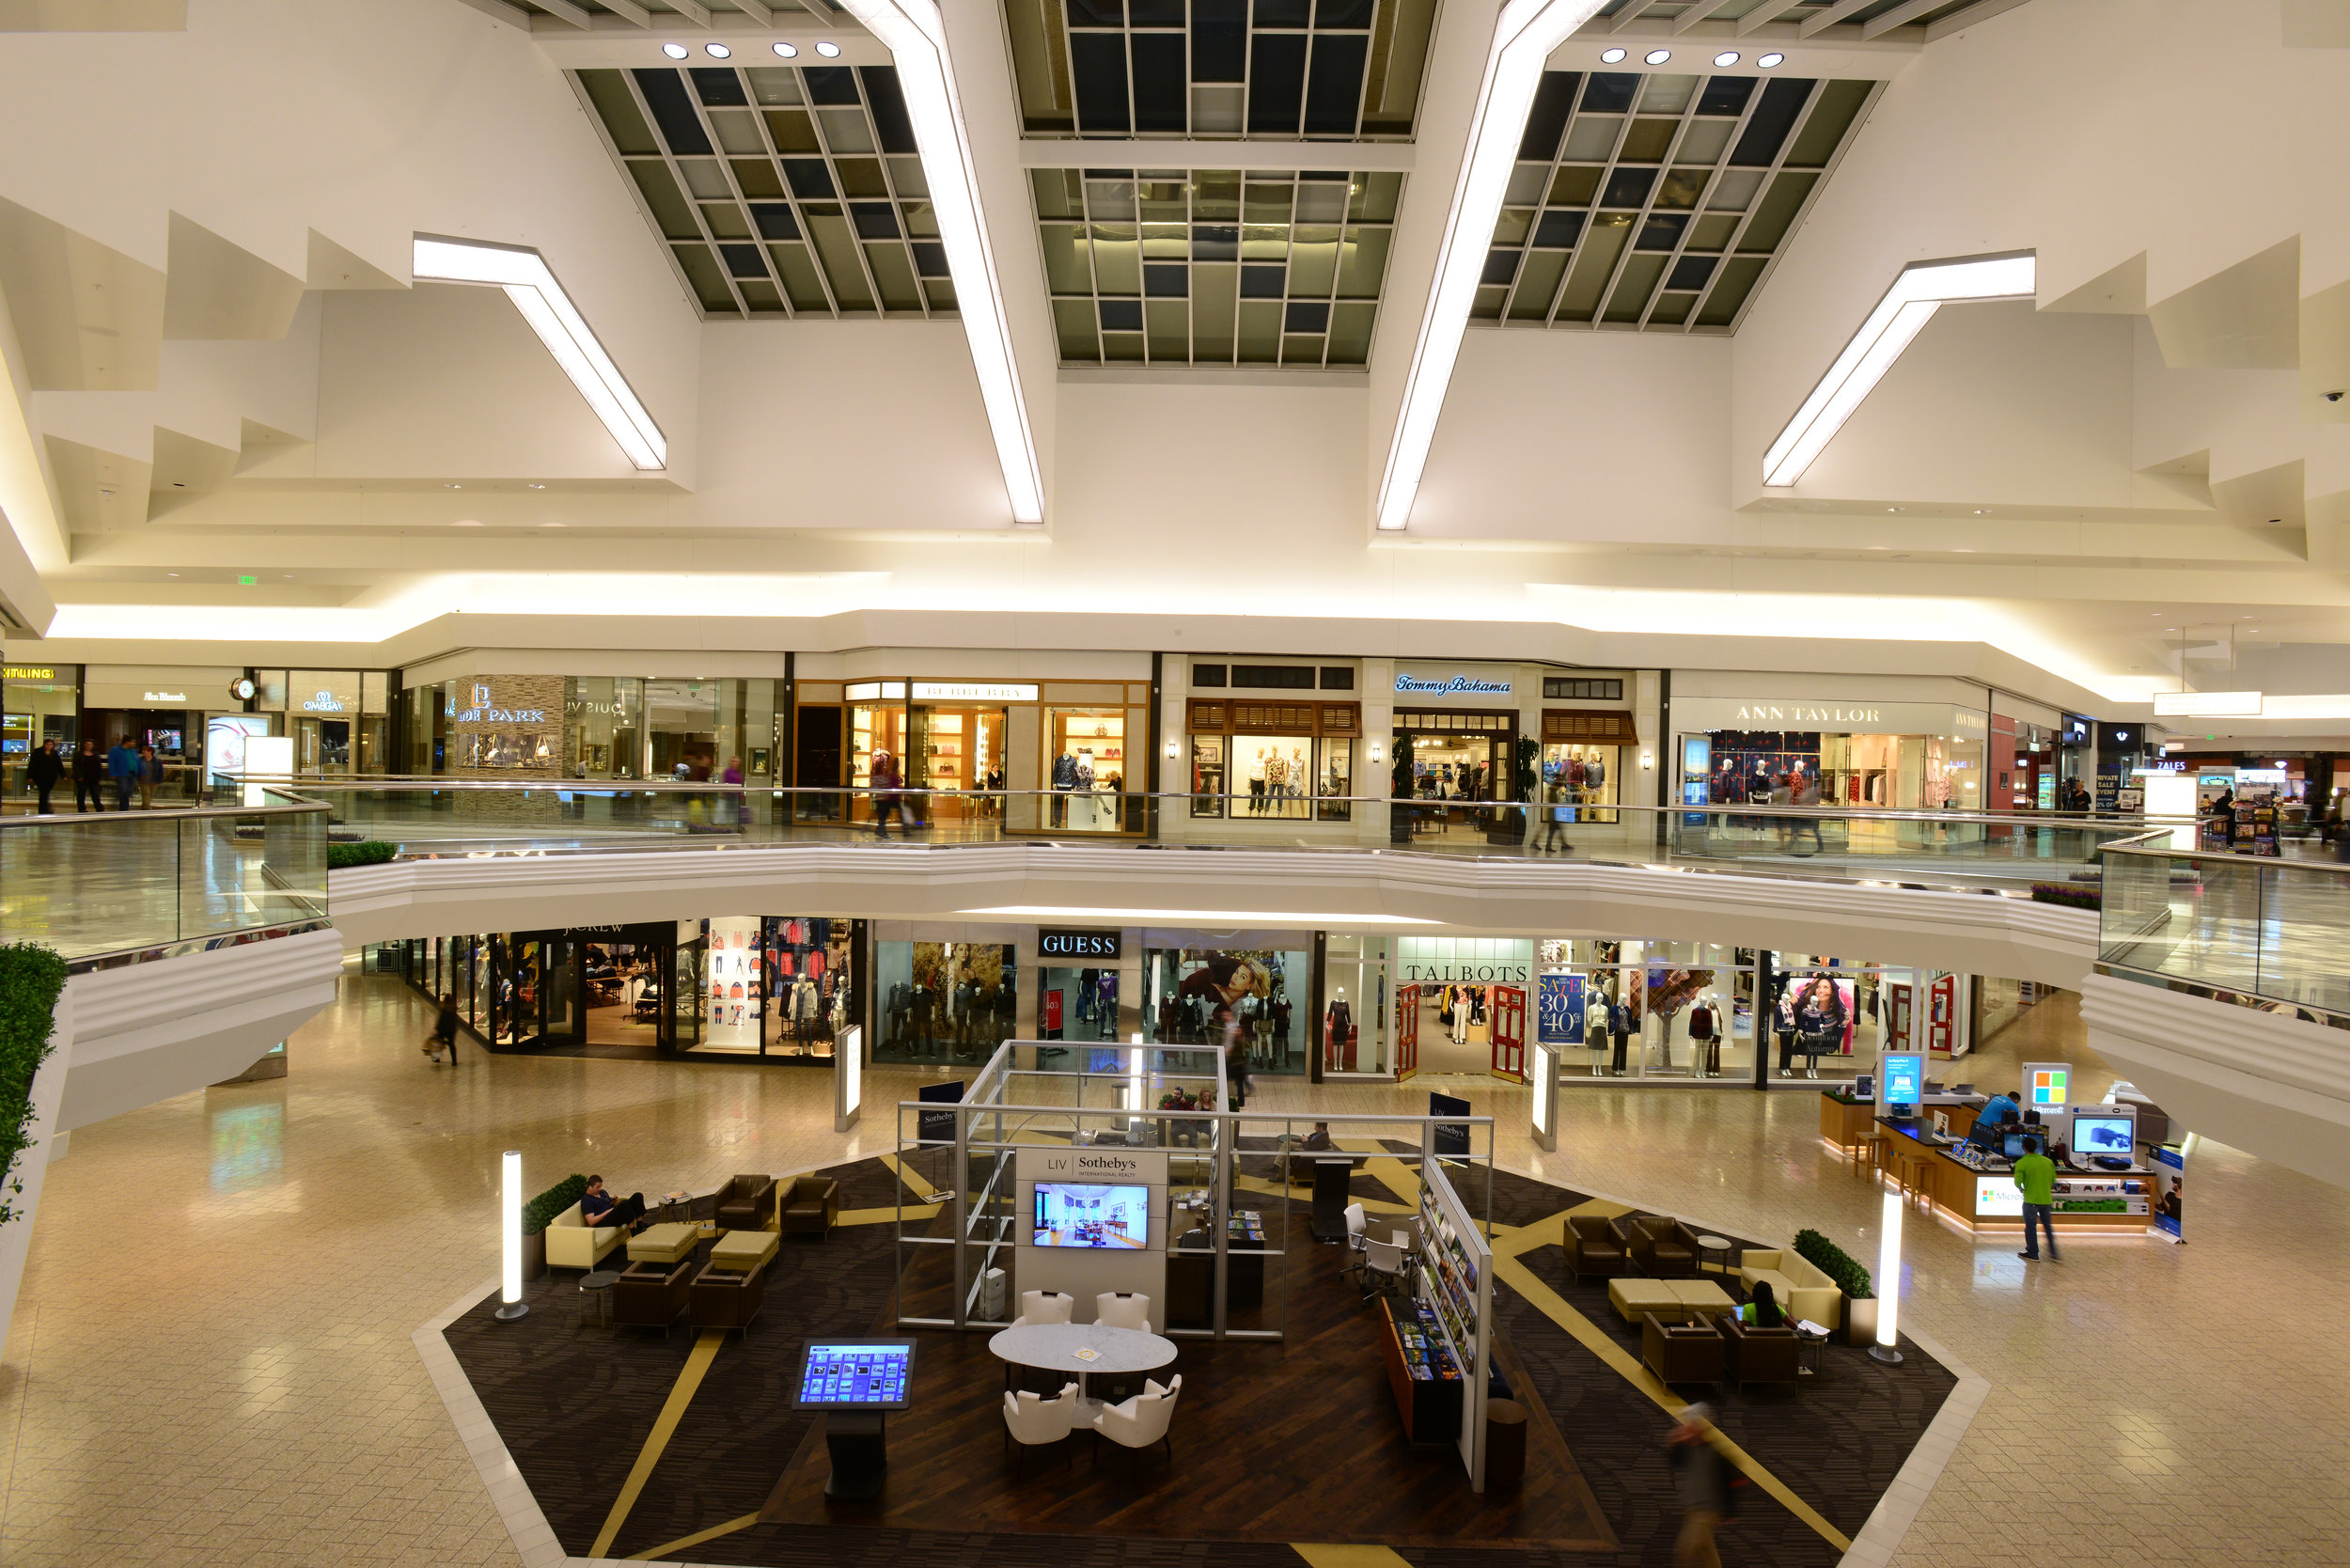 The renovated interior of the mall includes a new ridge skylight, escalators & seating areas.